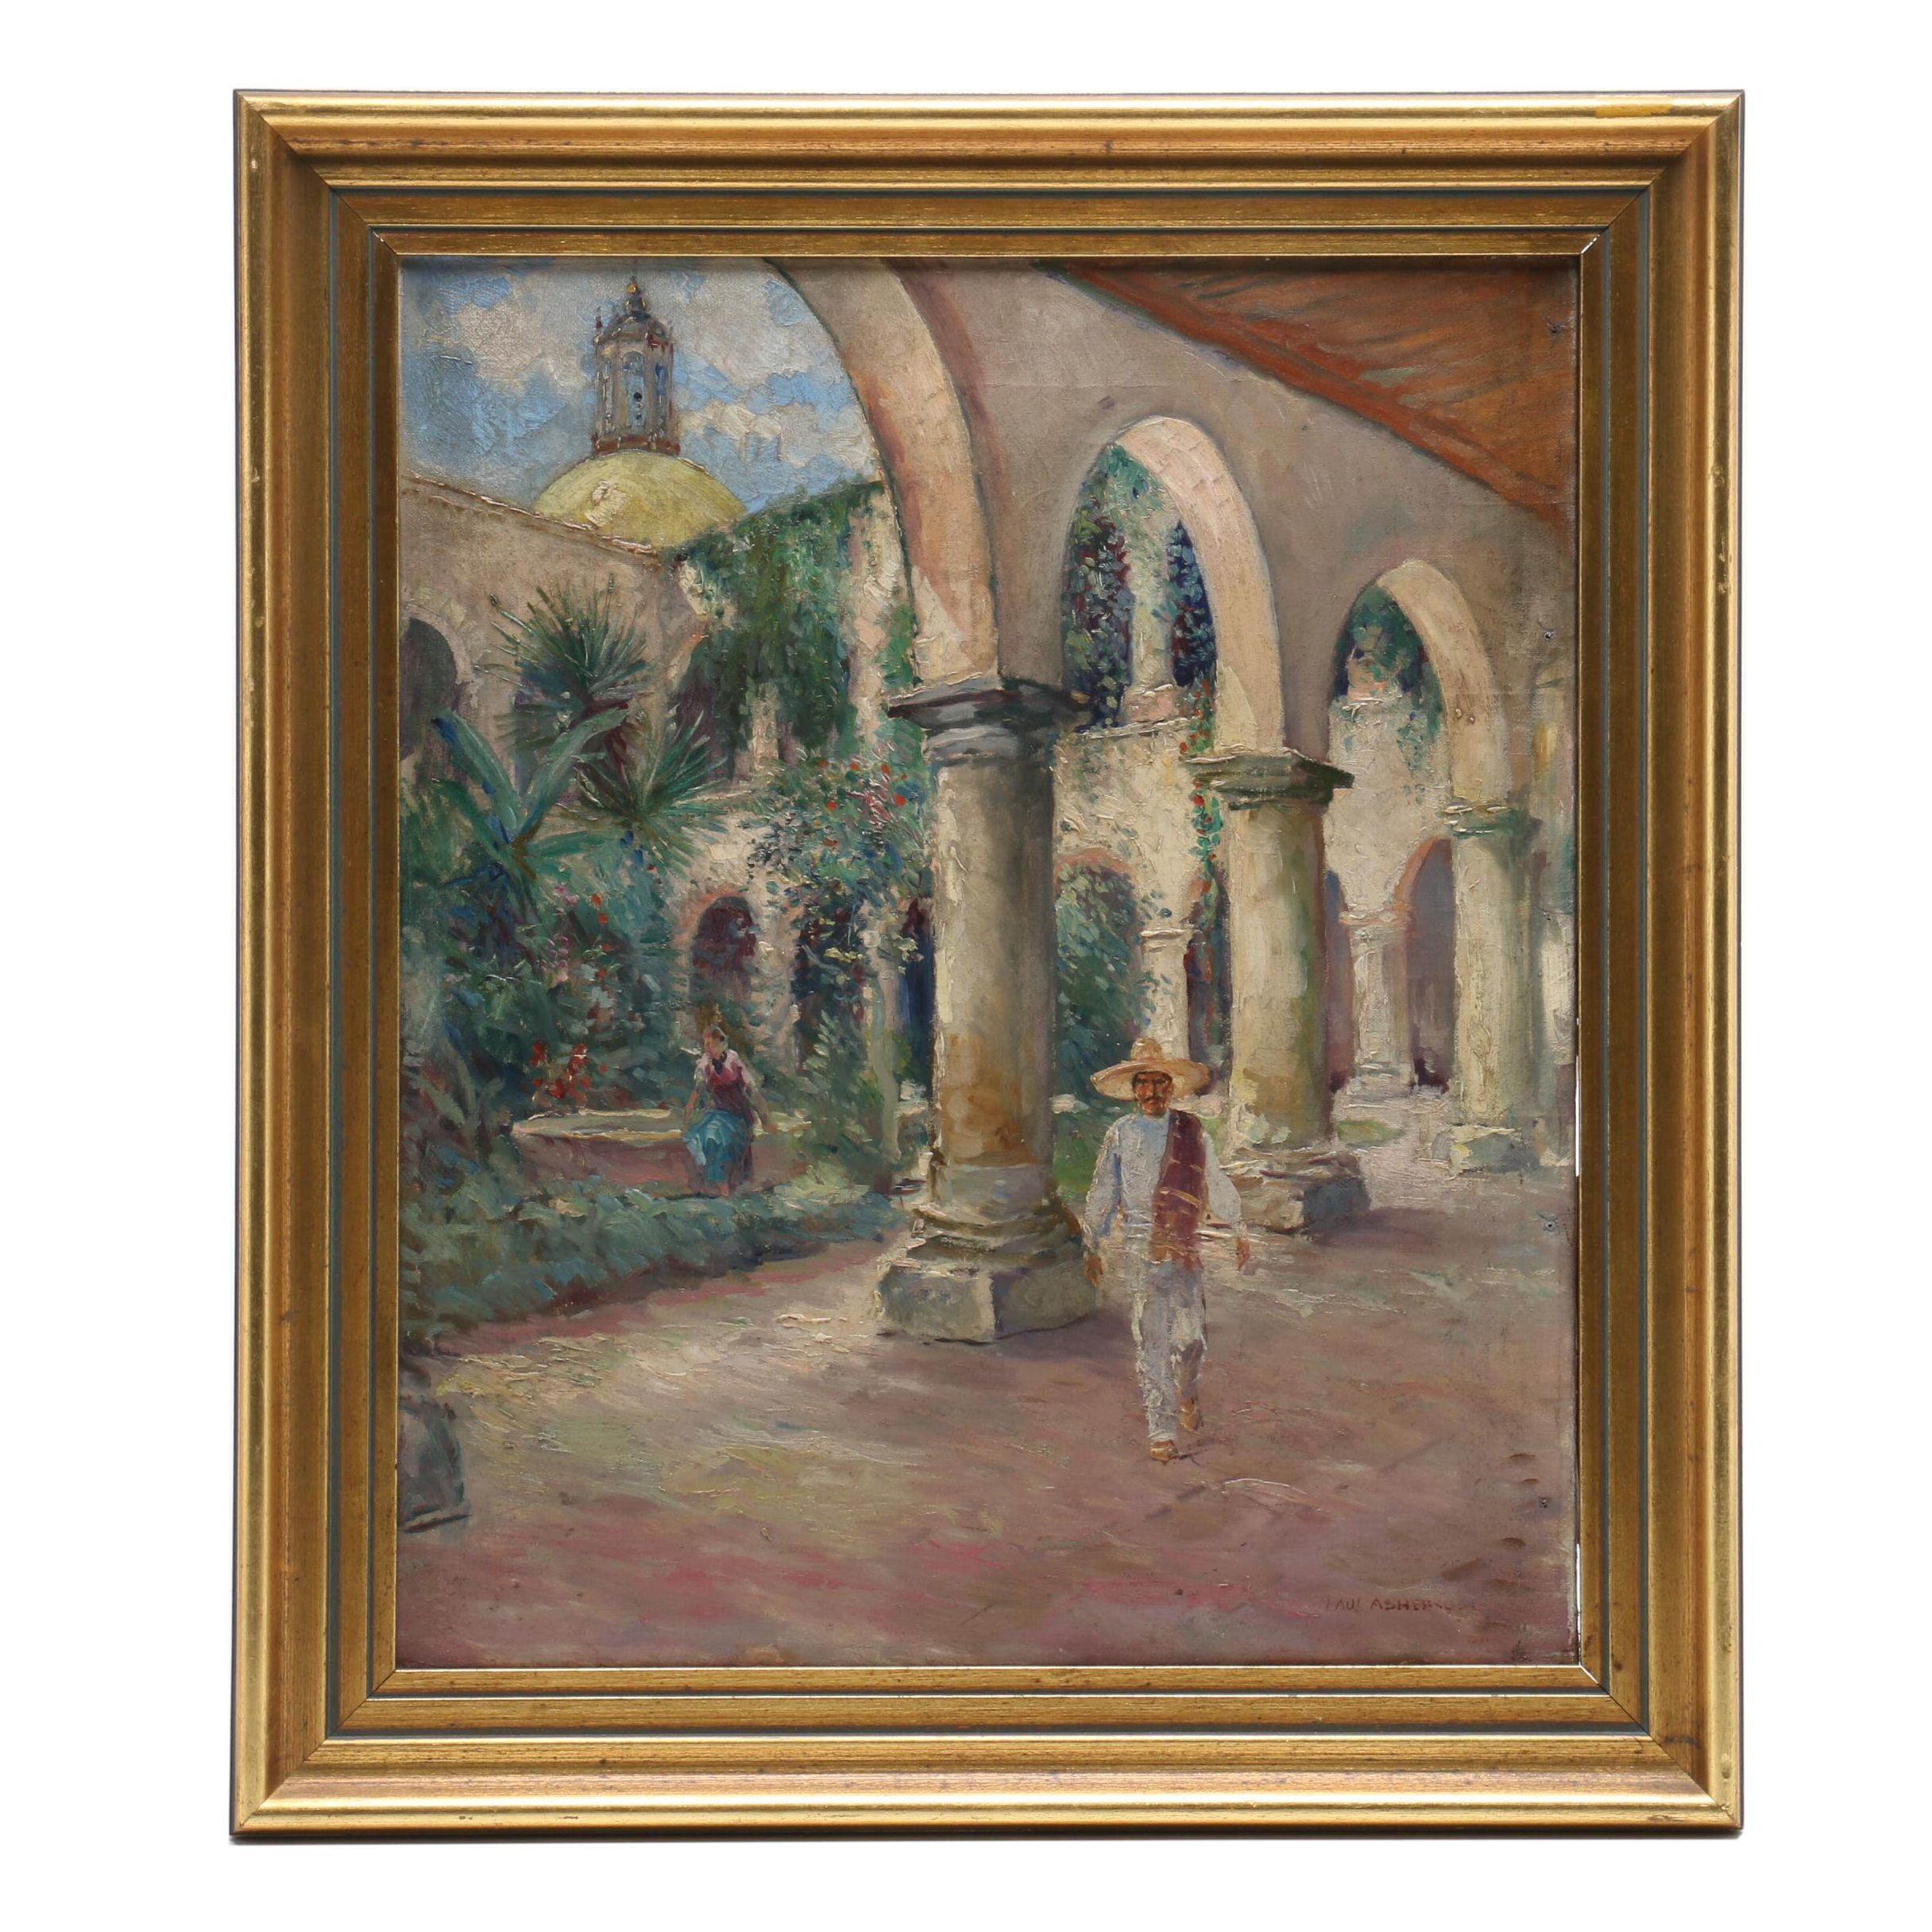 Paul Ashbrook Oil Painting of Figures in Courtyard